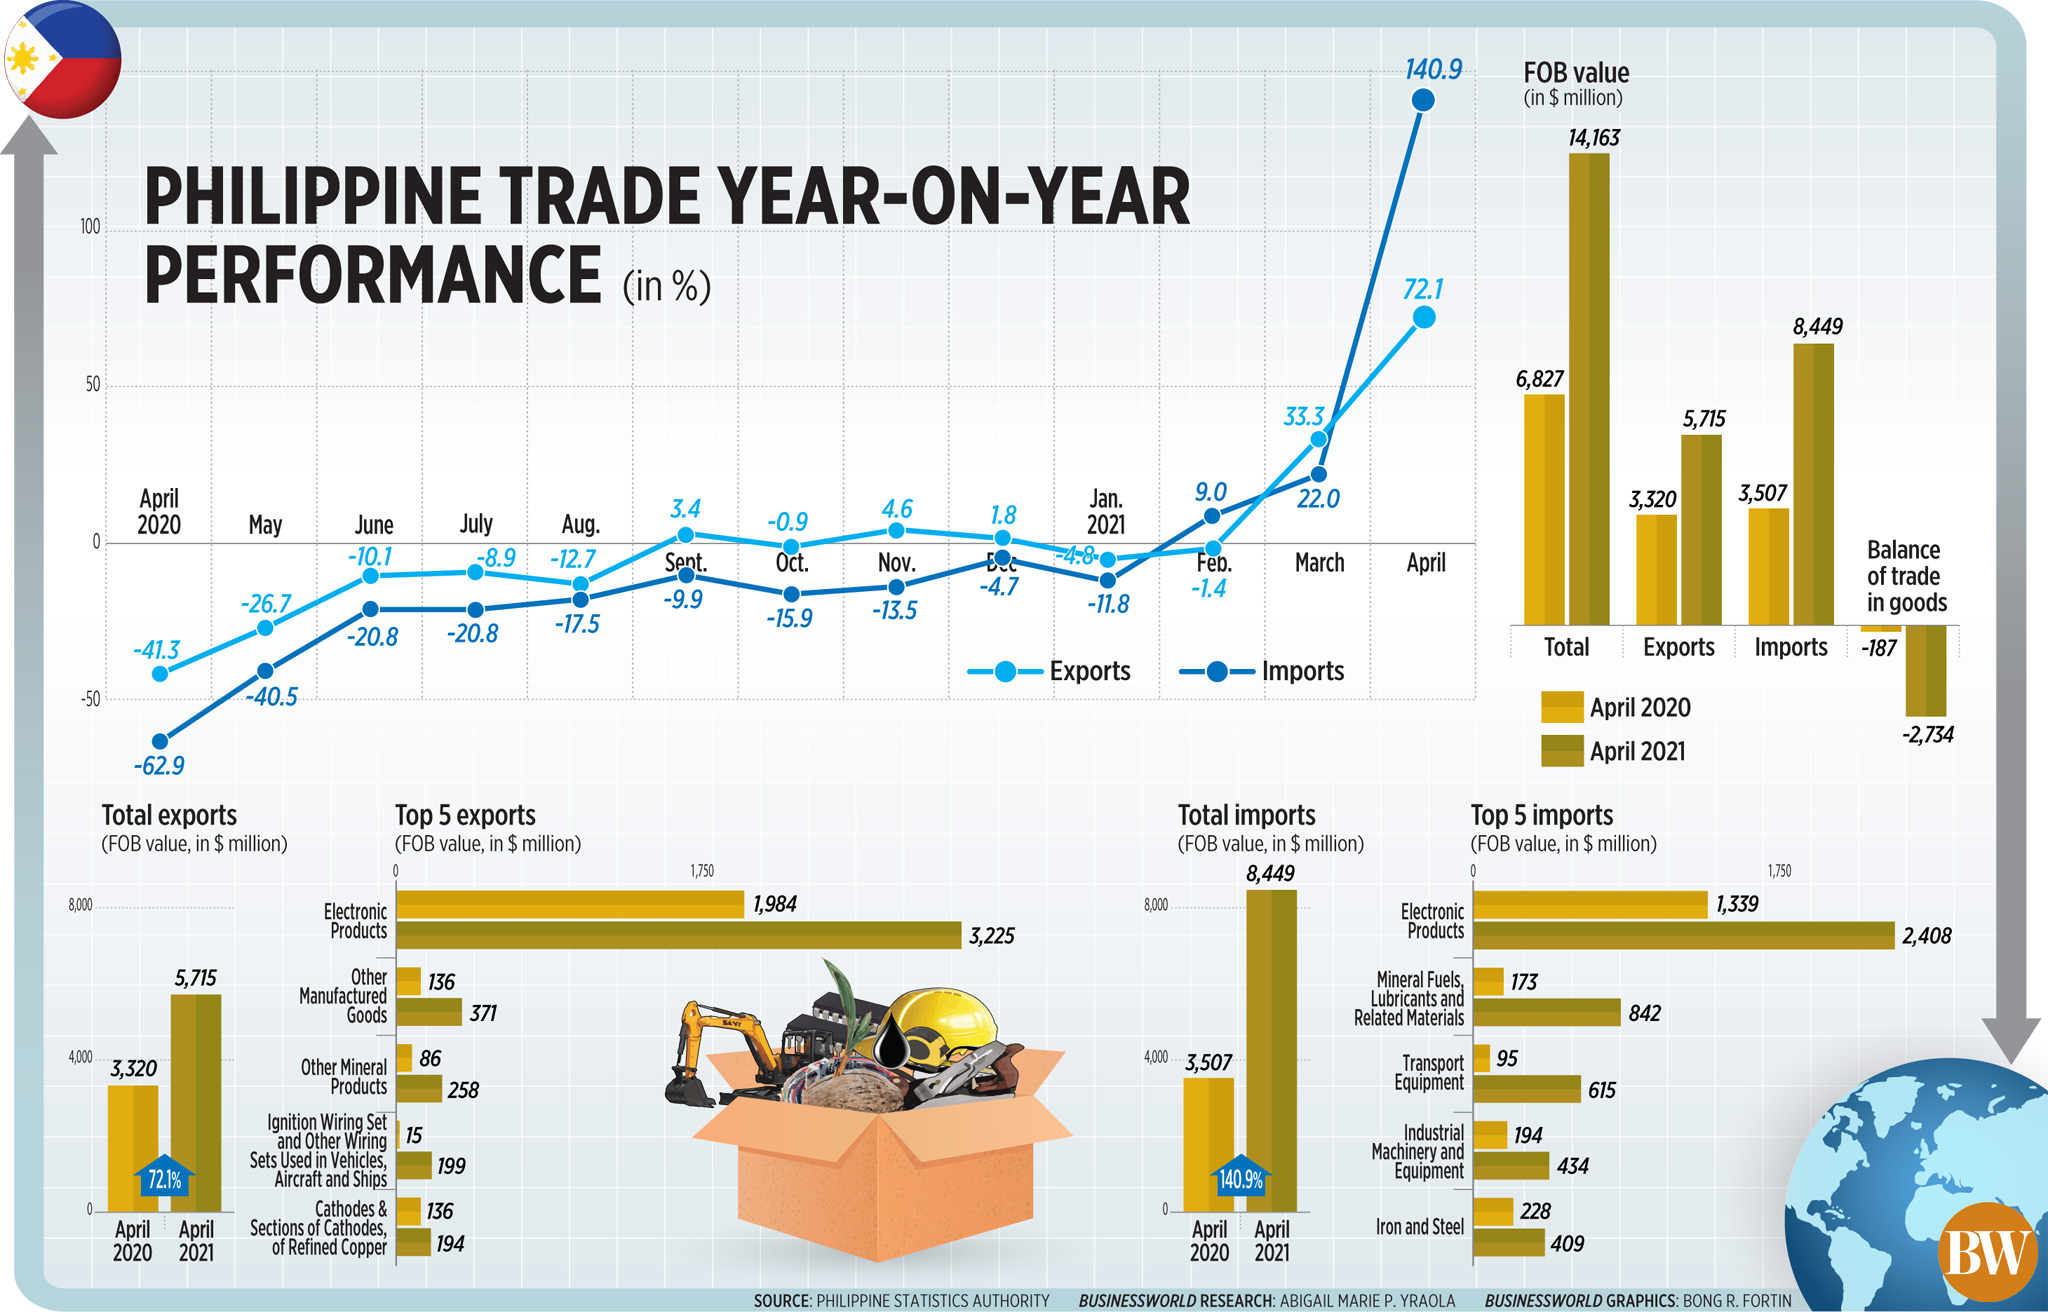 Philippine trade year-on-year performance (Apr. 2021)